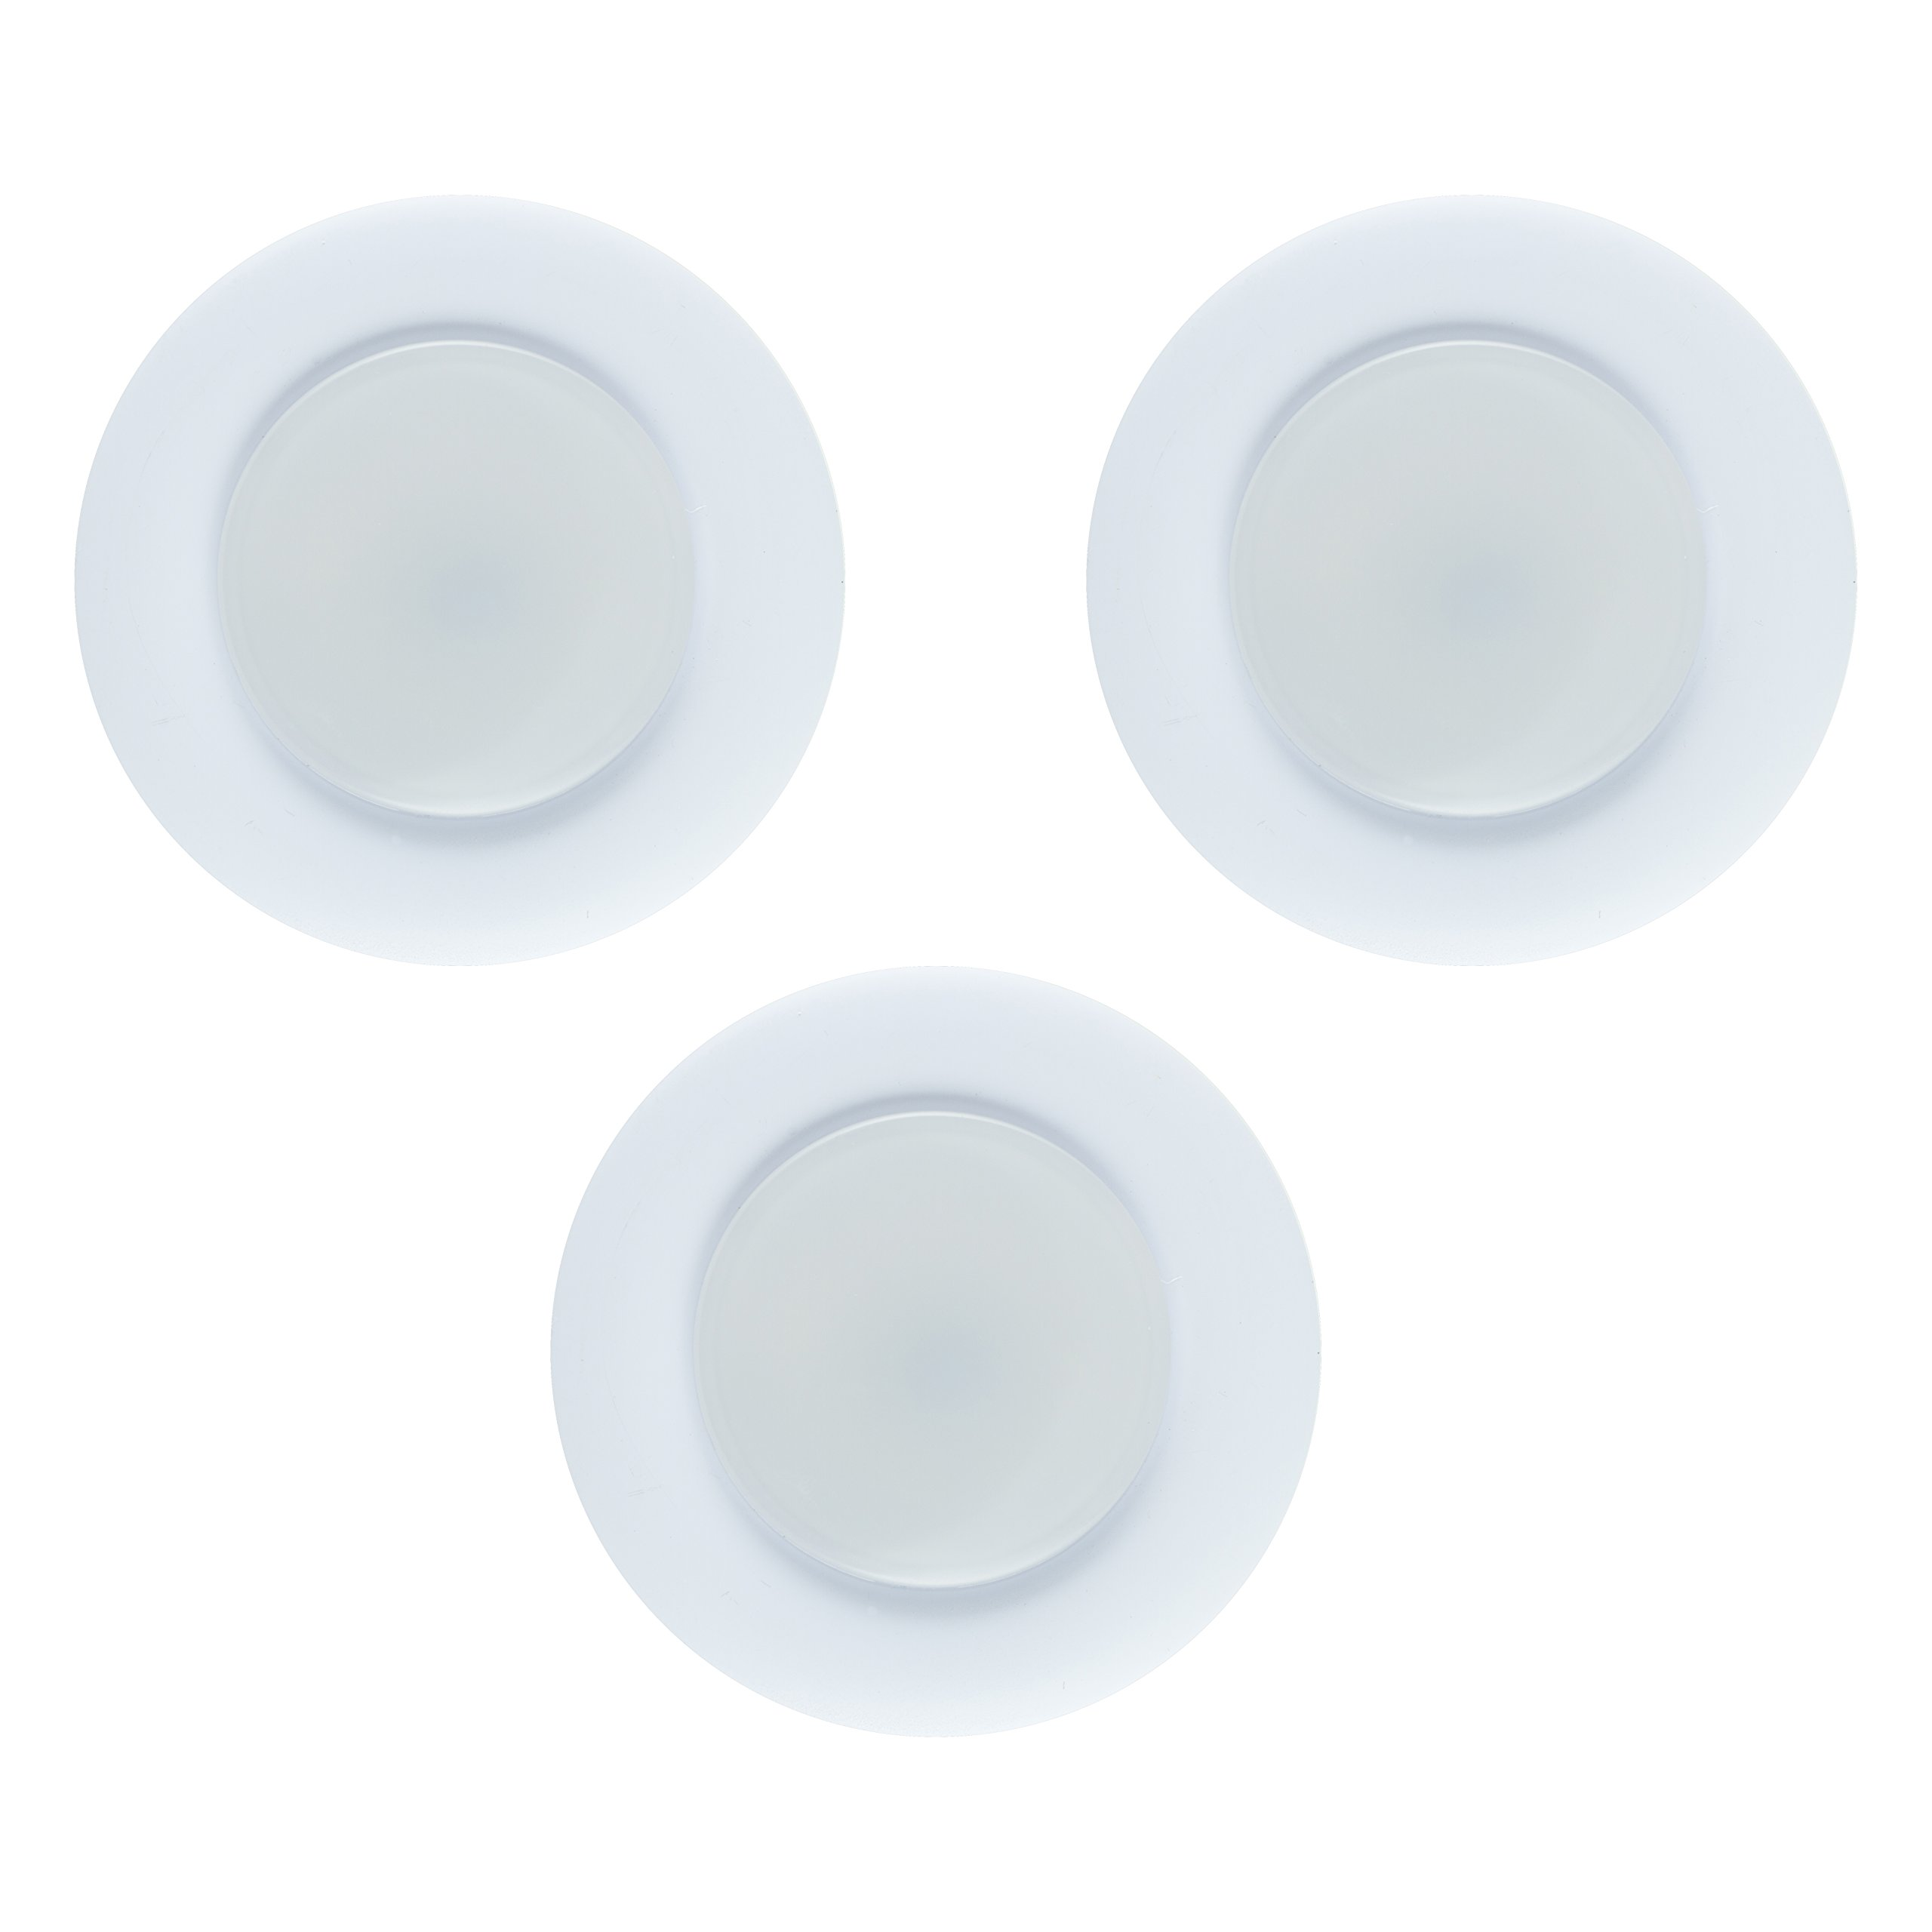 Ge 31393 Enbrighten Plug In Linkable Led Puck Lights W: GE Enbrighten LED Puck Lights, 3 Pack, Plug-In, Linkable